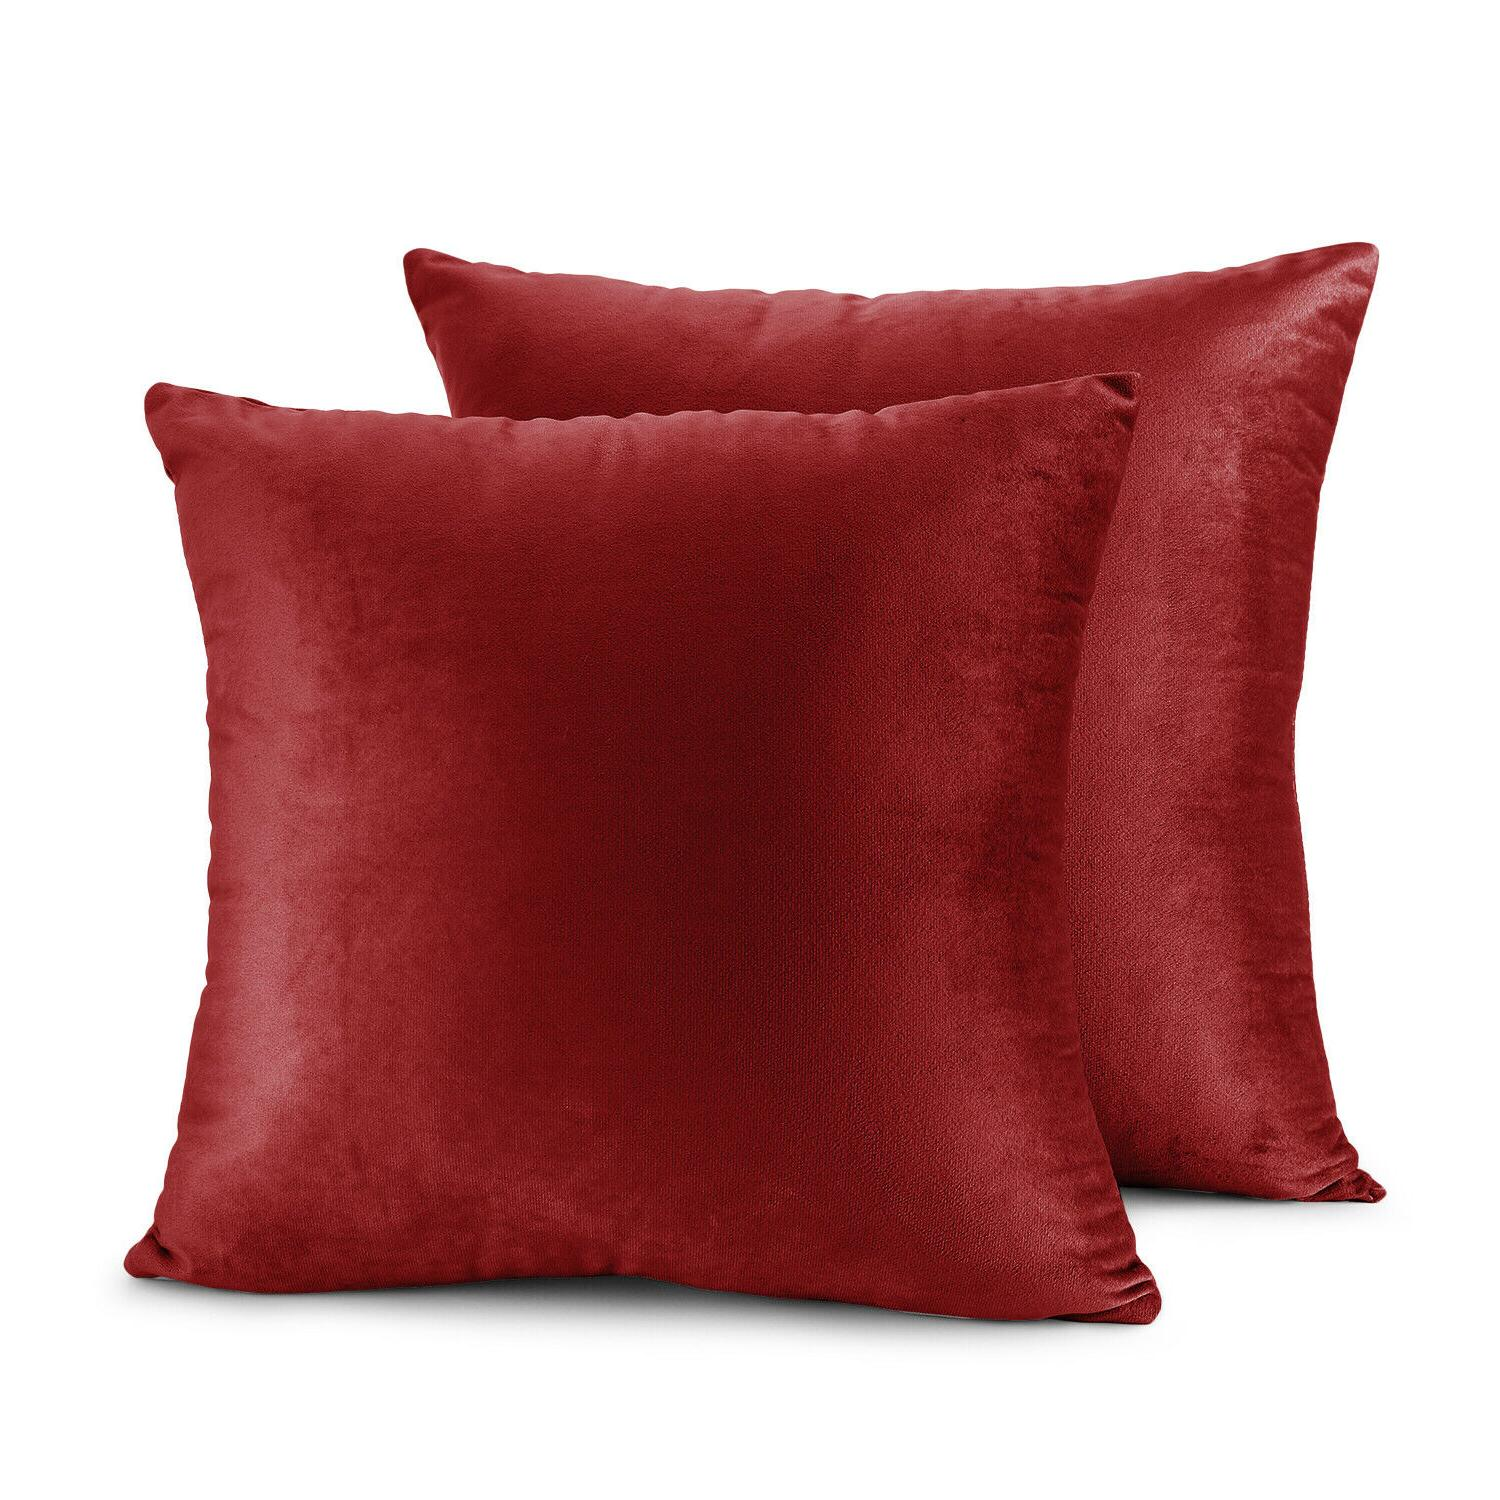 Throw of Sofa Velvet Cushion Cases Sizes